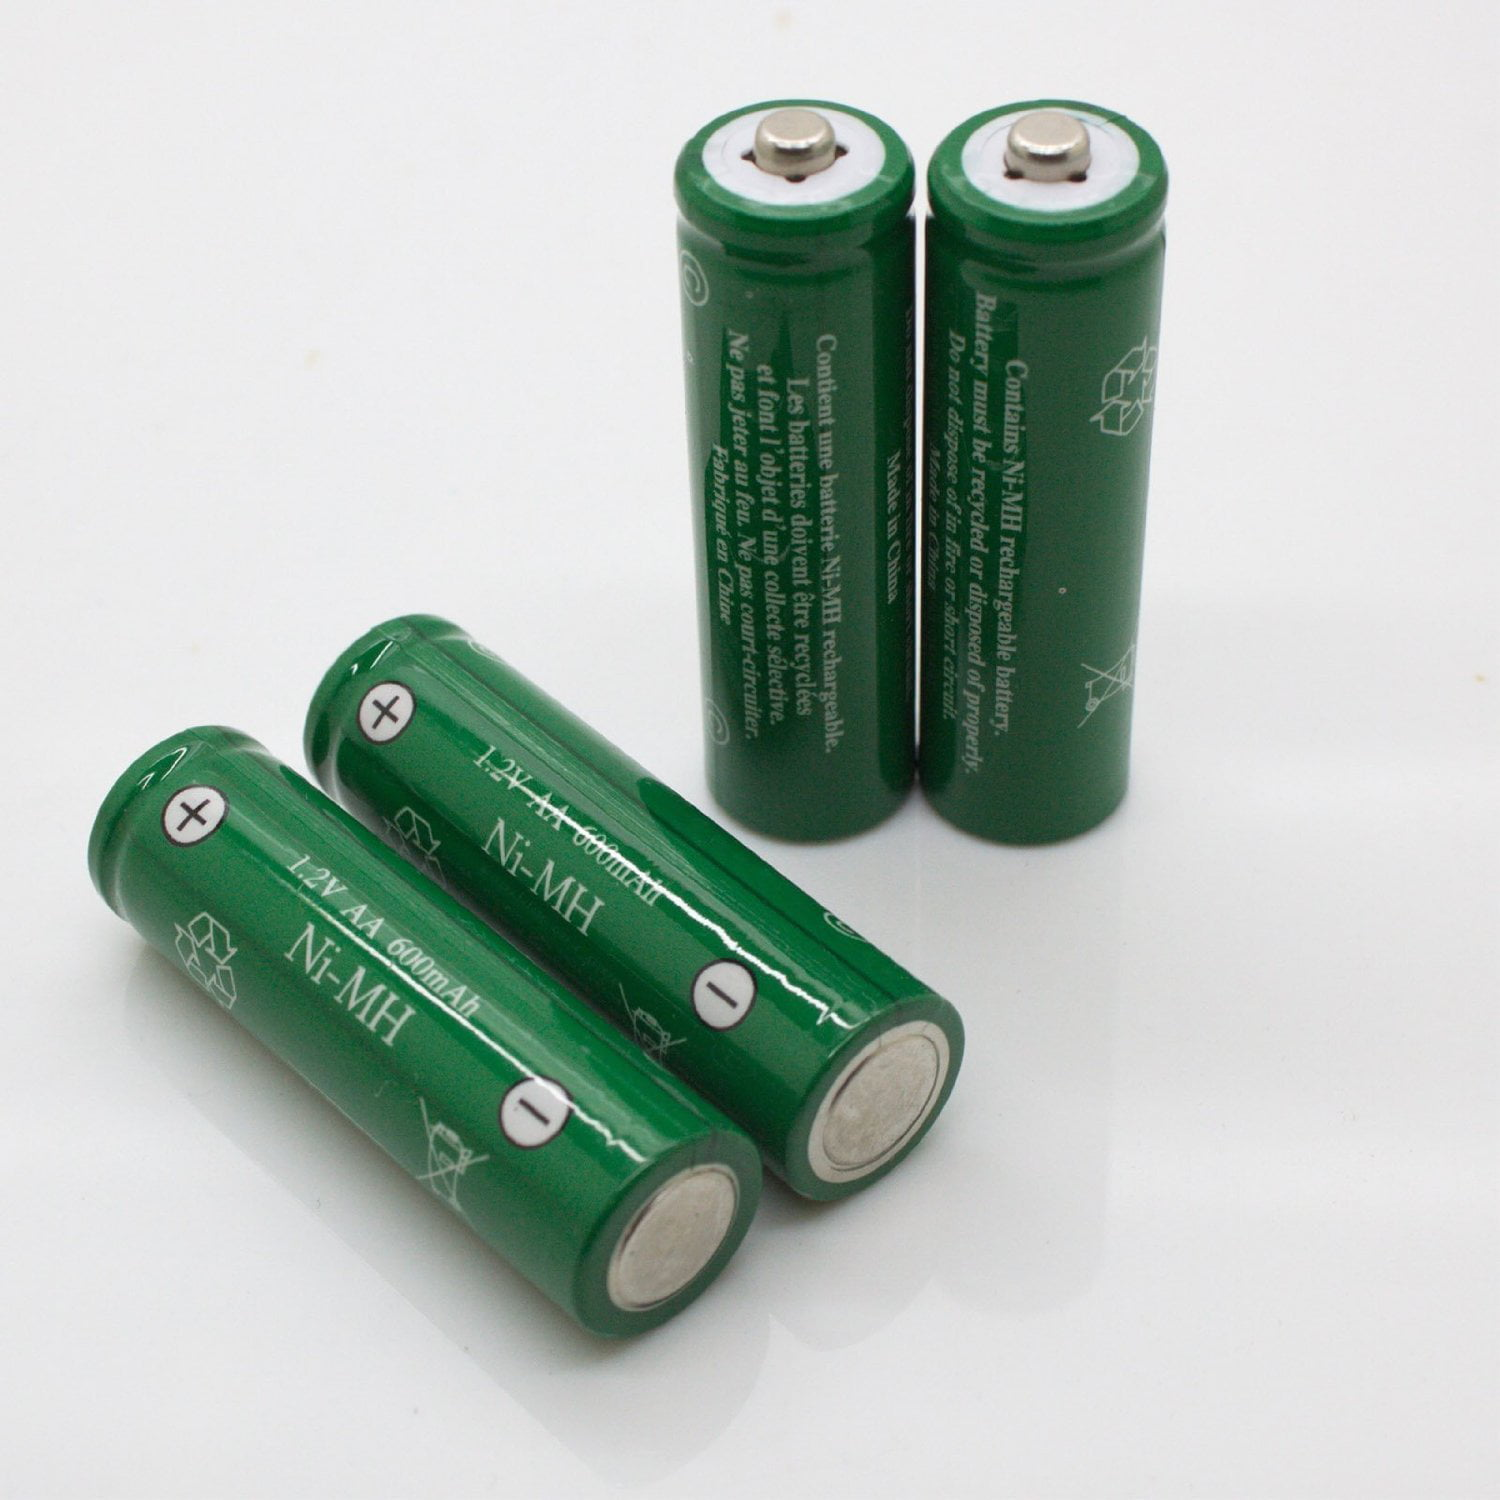 AA Ni-MH 600mAh Rechargable Batteries for Solar Powered